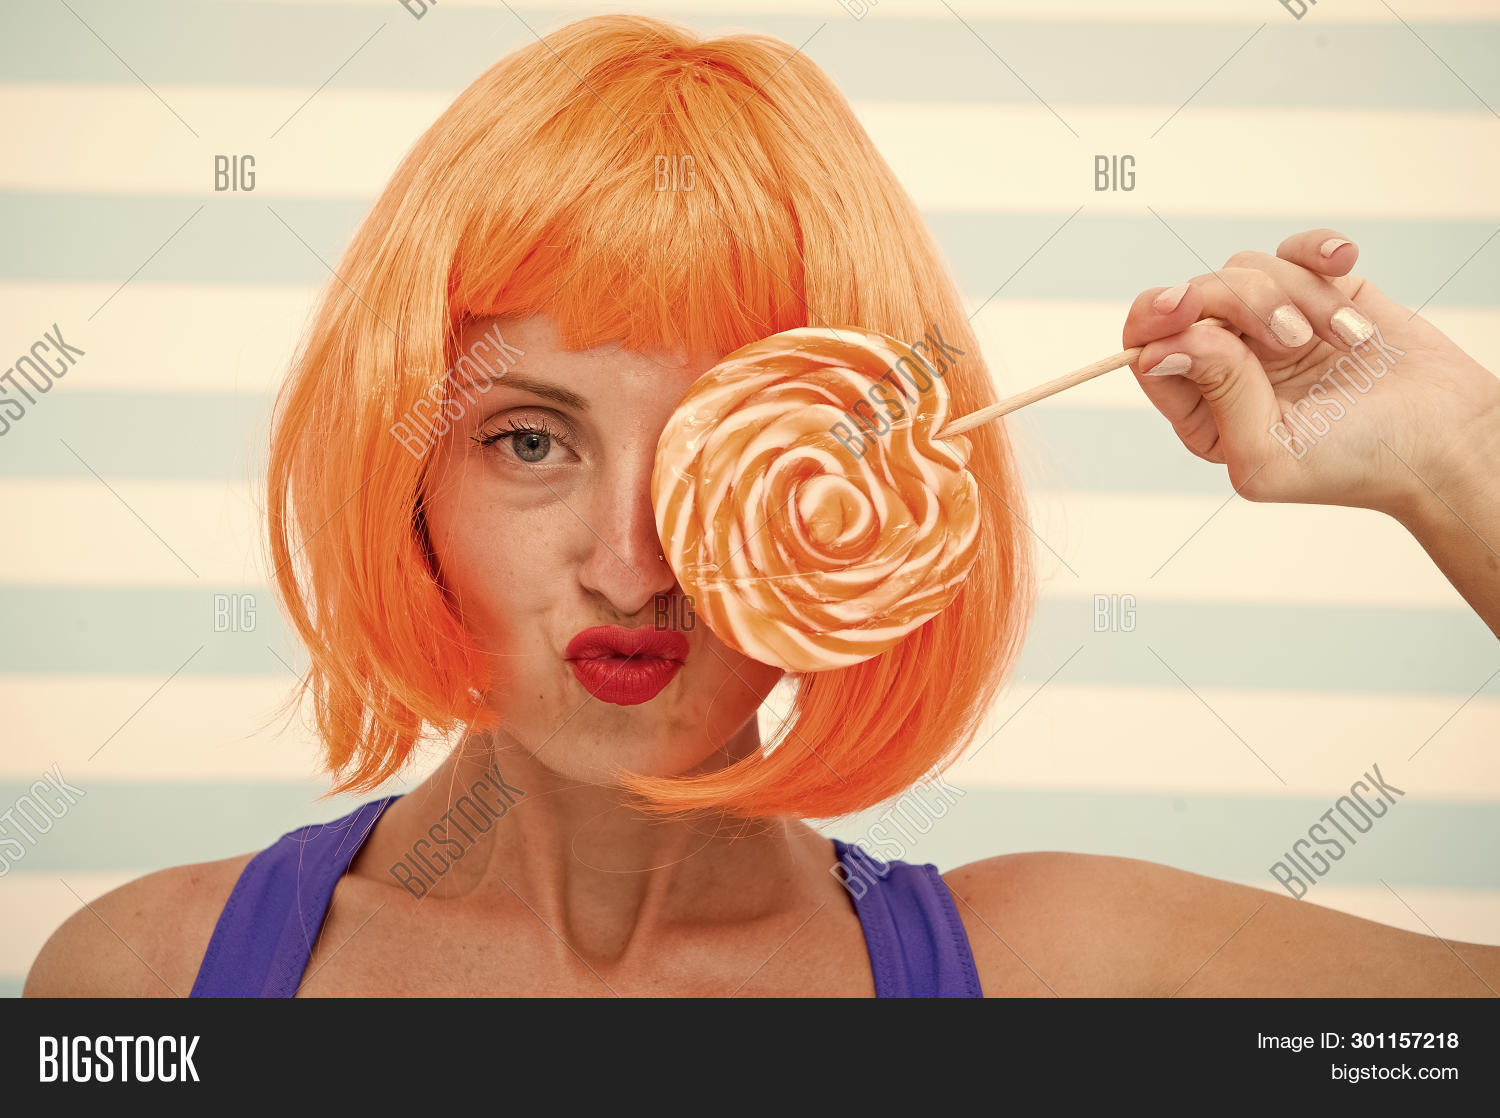 advert,beautiful,beauty,candy,carefree,cheerful,cool,crazy,diet,dieting,enjoyment,excitement,fashion,fashionable,female,flirting,food,funky,girl,hair,headwear,holding,lollipop,look,love,mouth,orange,passion,perfection,pin-up,playful,playing,shop,styles,sweet,toothy,woman